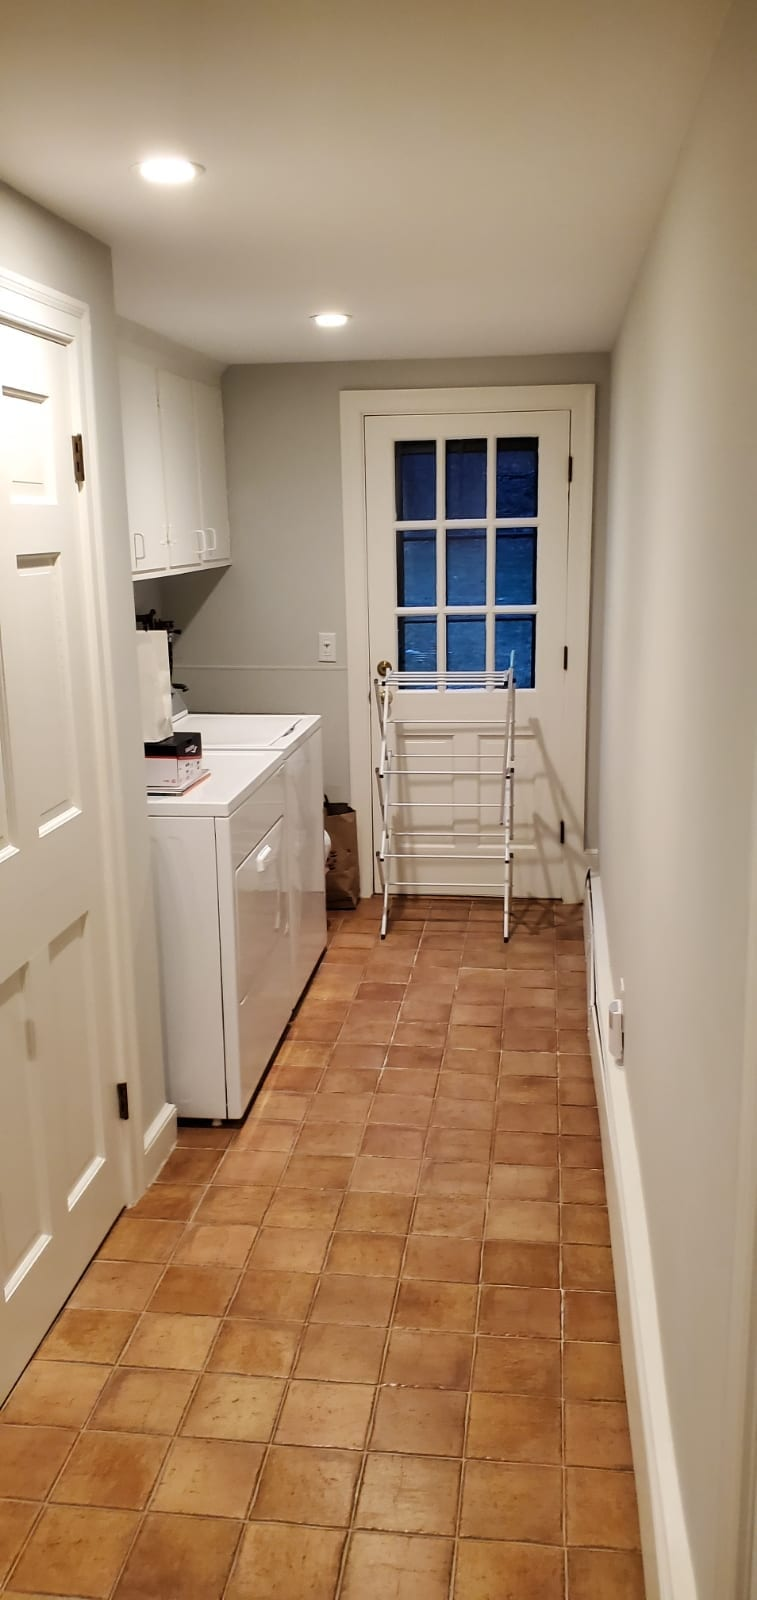 hj homes solutions, laundry room, custom cabinets, carpenters, shrewsbury, worcester, metrowest, contractors,